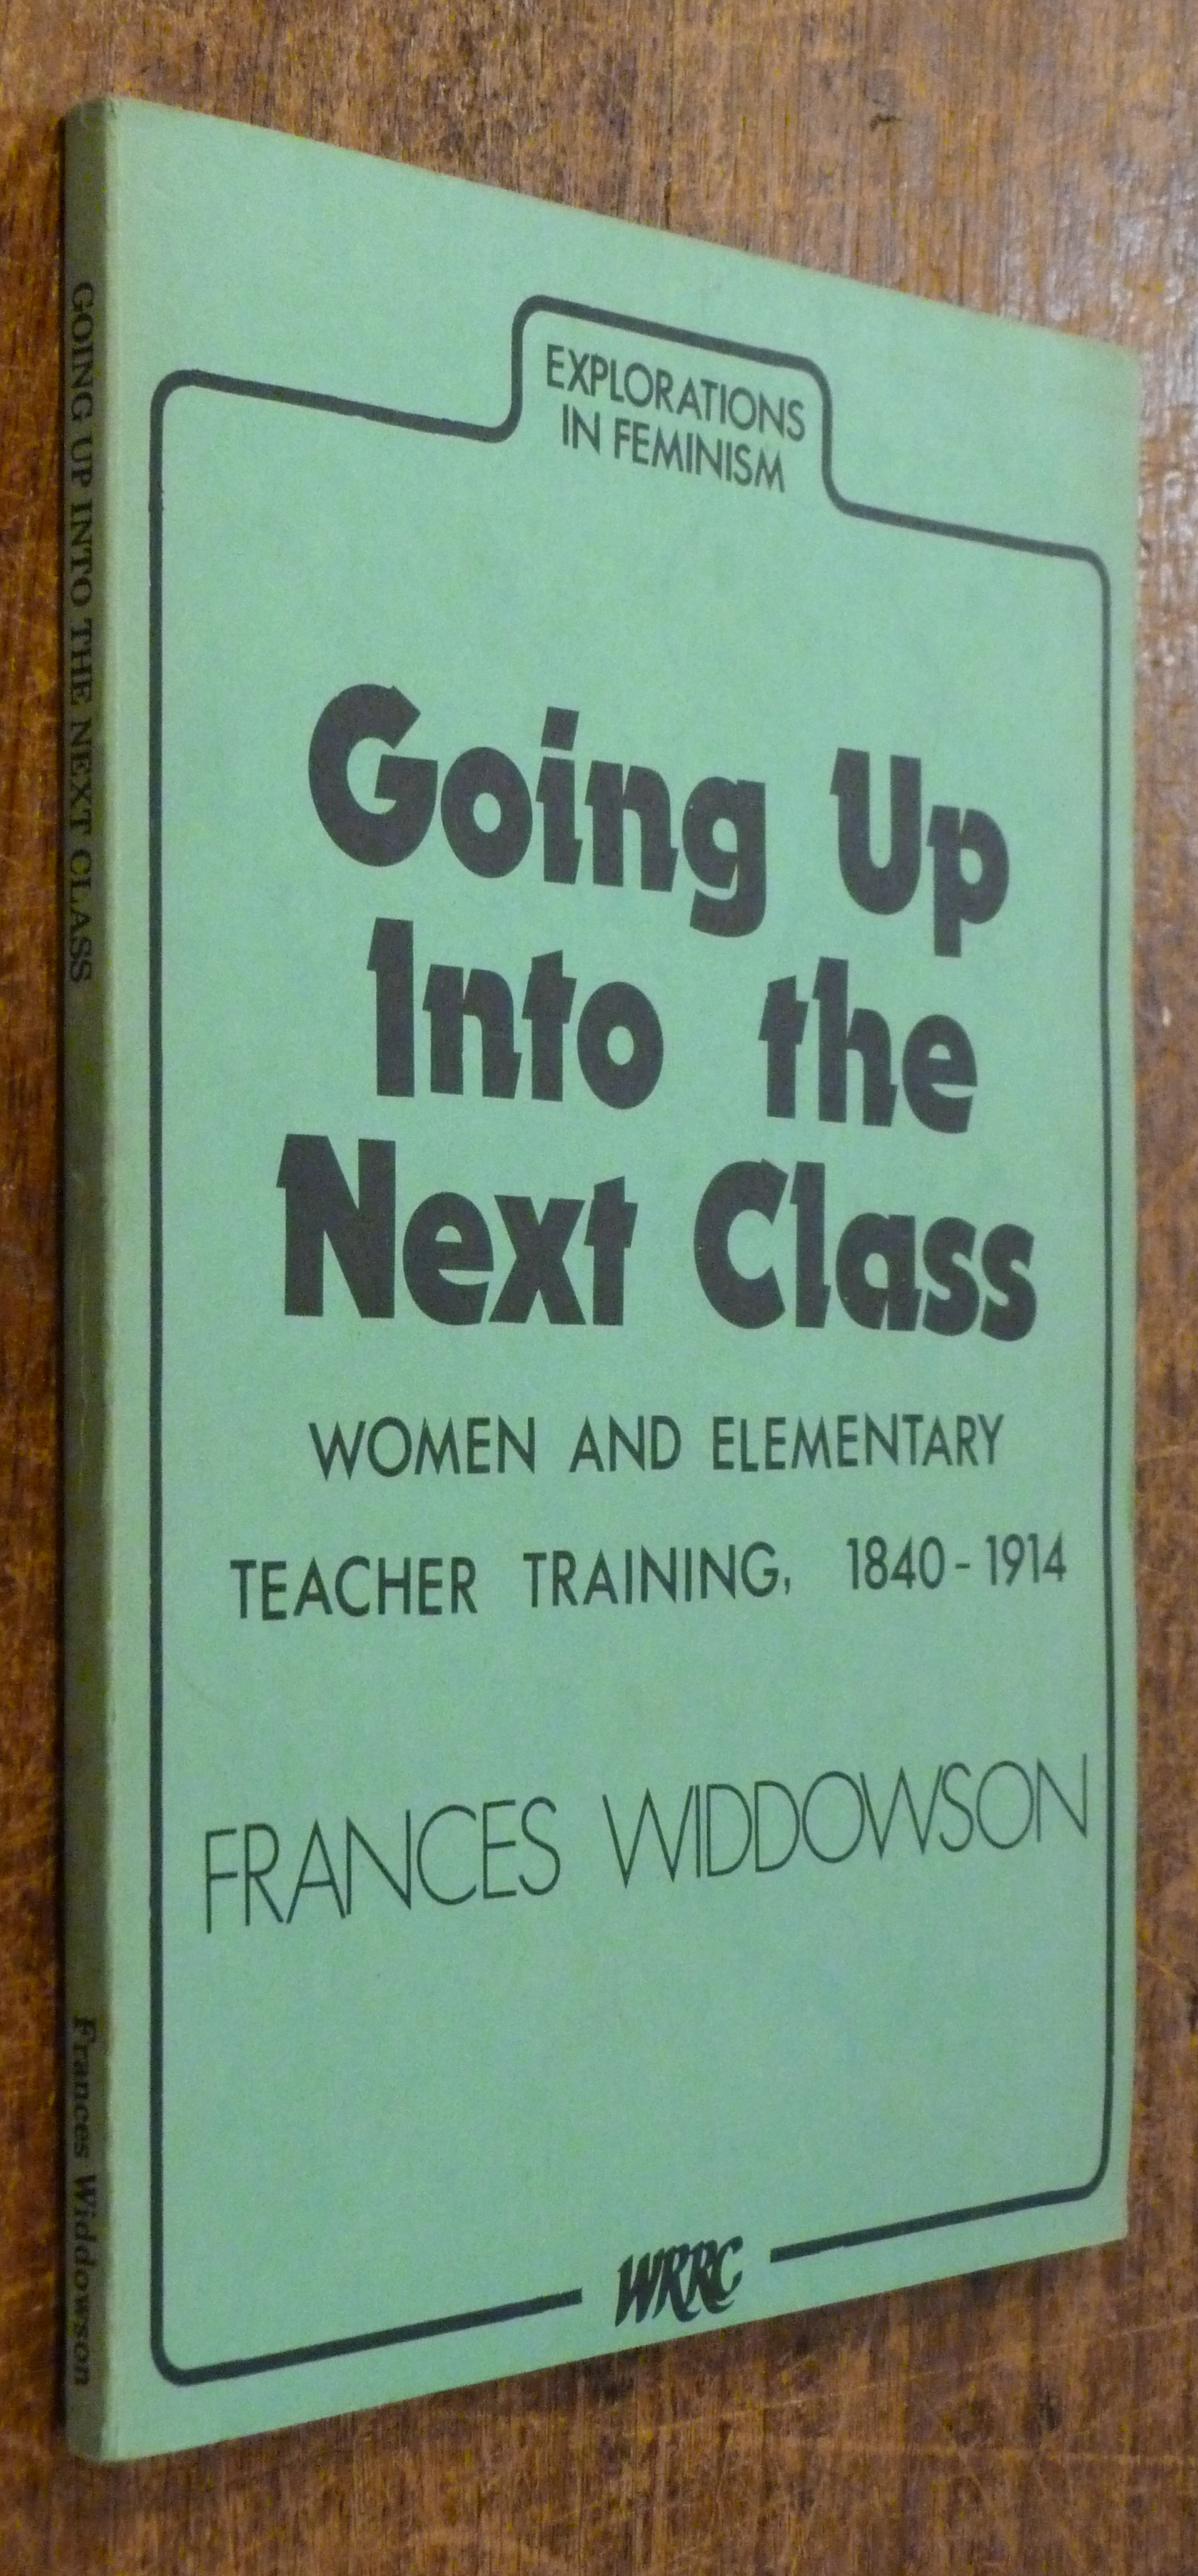 Image for Going Up Into the Next Class: Women and Elementary Teacher Training 1840-1914   Explorations in Feminism No. 7